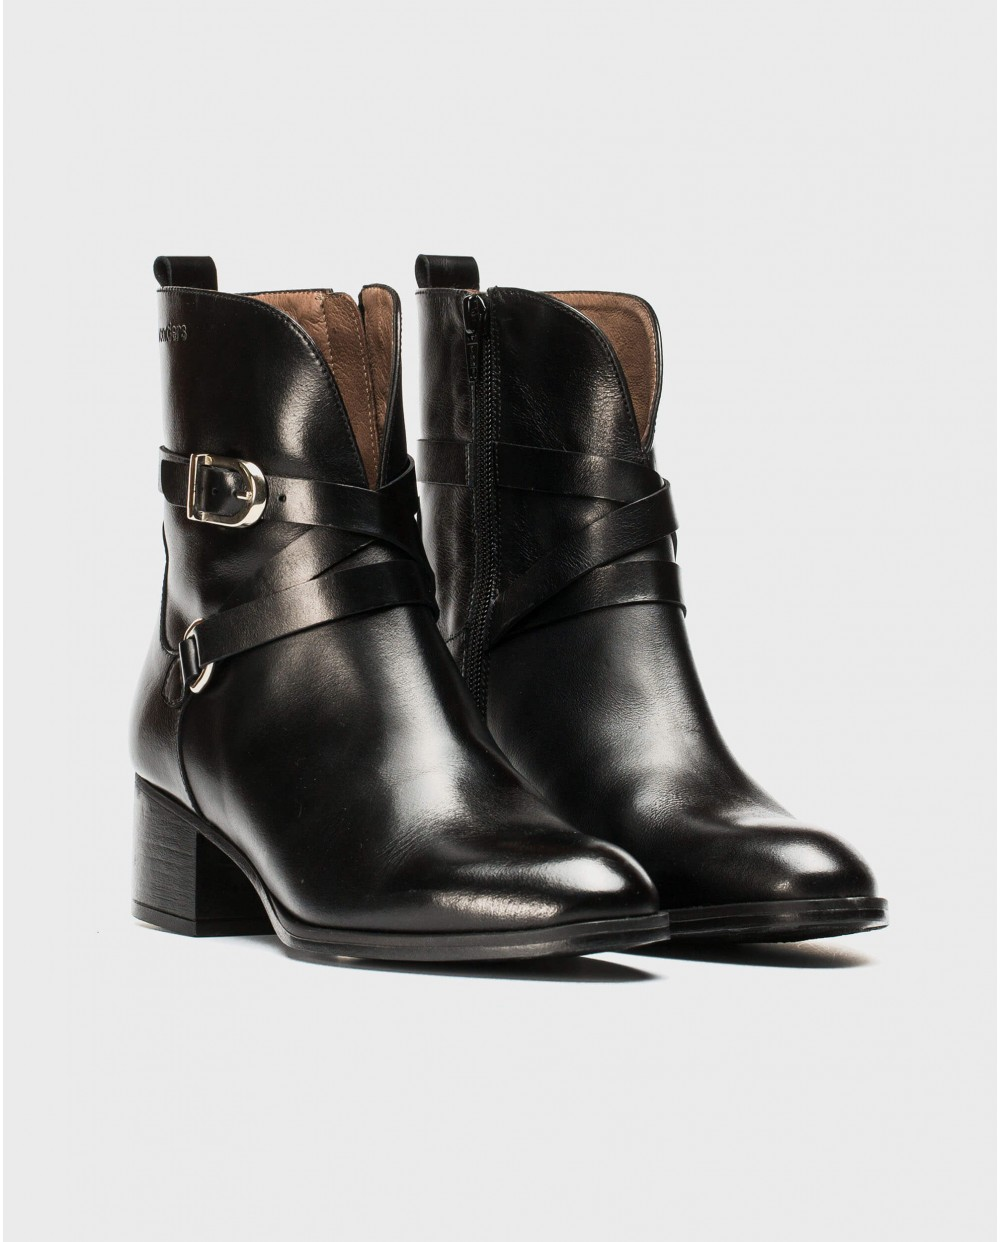 Wonders-Ankle Boots-Ankle boot with double strap